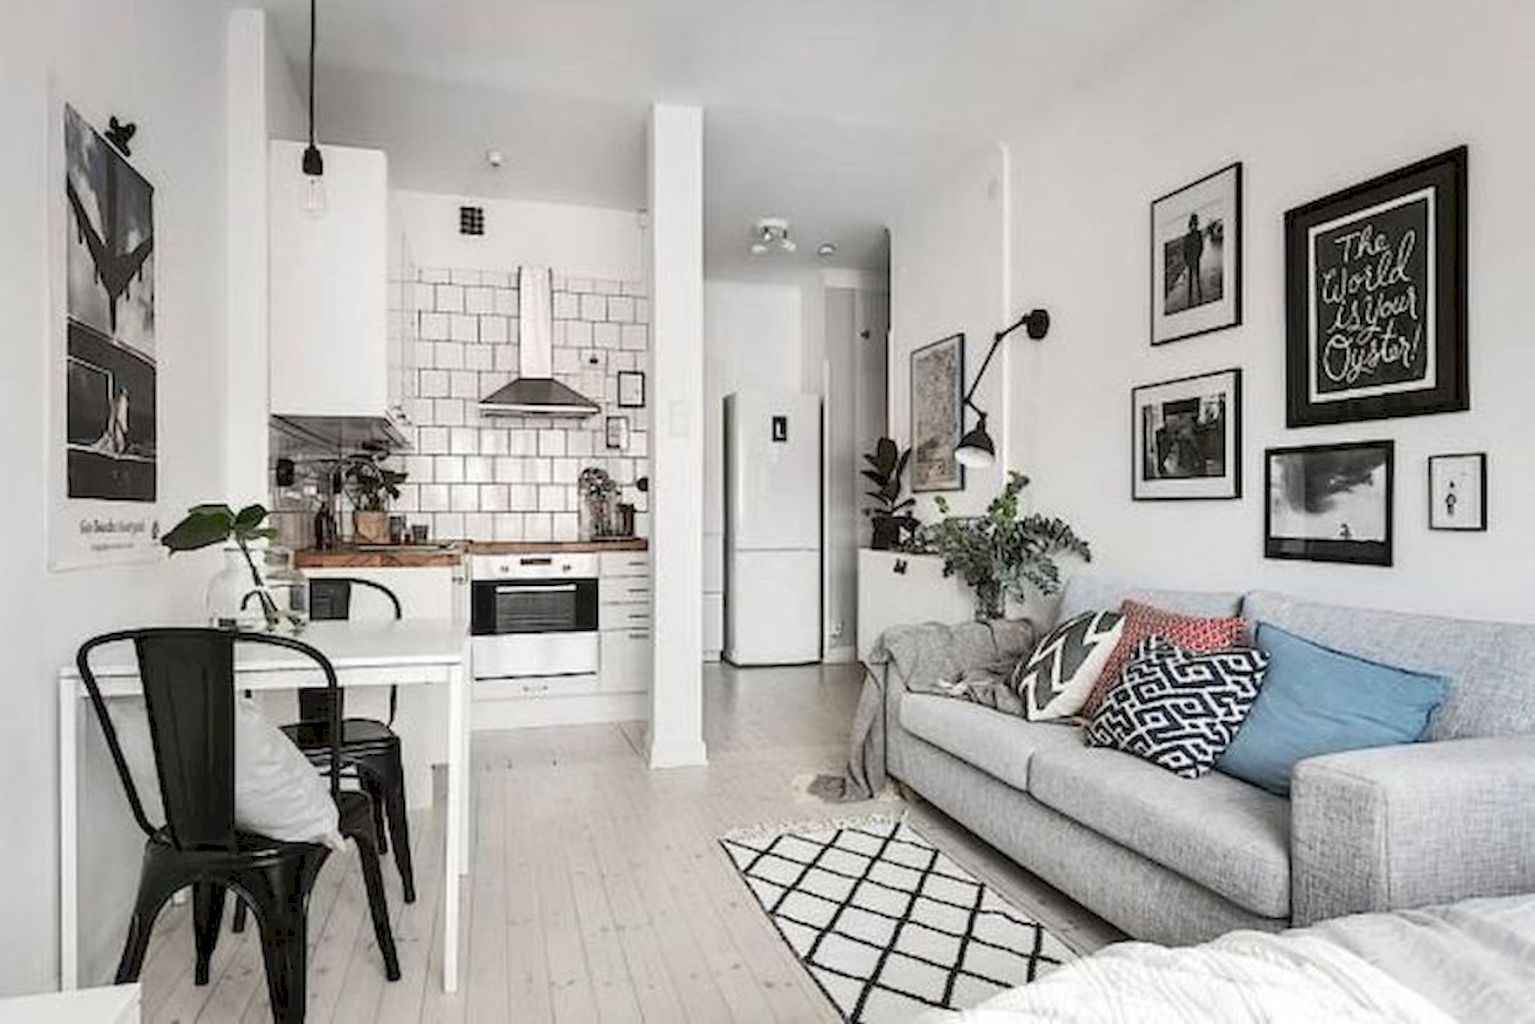 Cozy apartment decorating ideas on a budget (77)